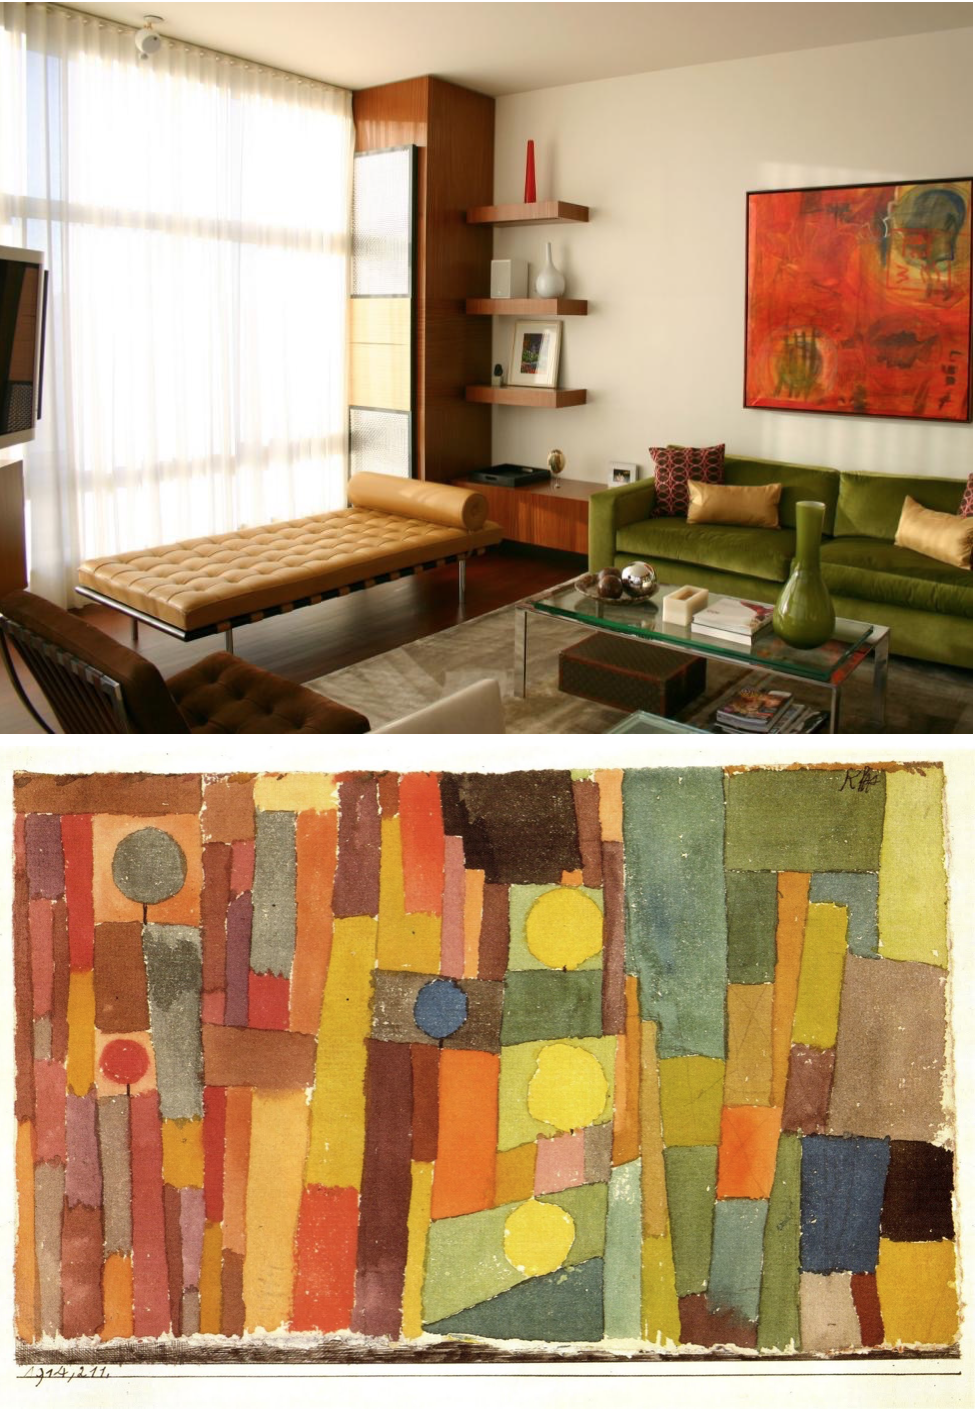 A split-complement color scheme, like the one used in this watercolor study by Paul Klee, allows for contrasting, dynamic hues that are also harmonious. Images: HGTV, Pinterest.